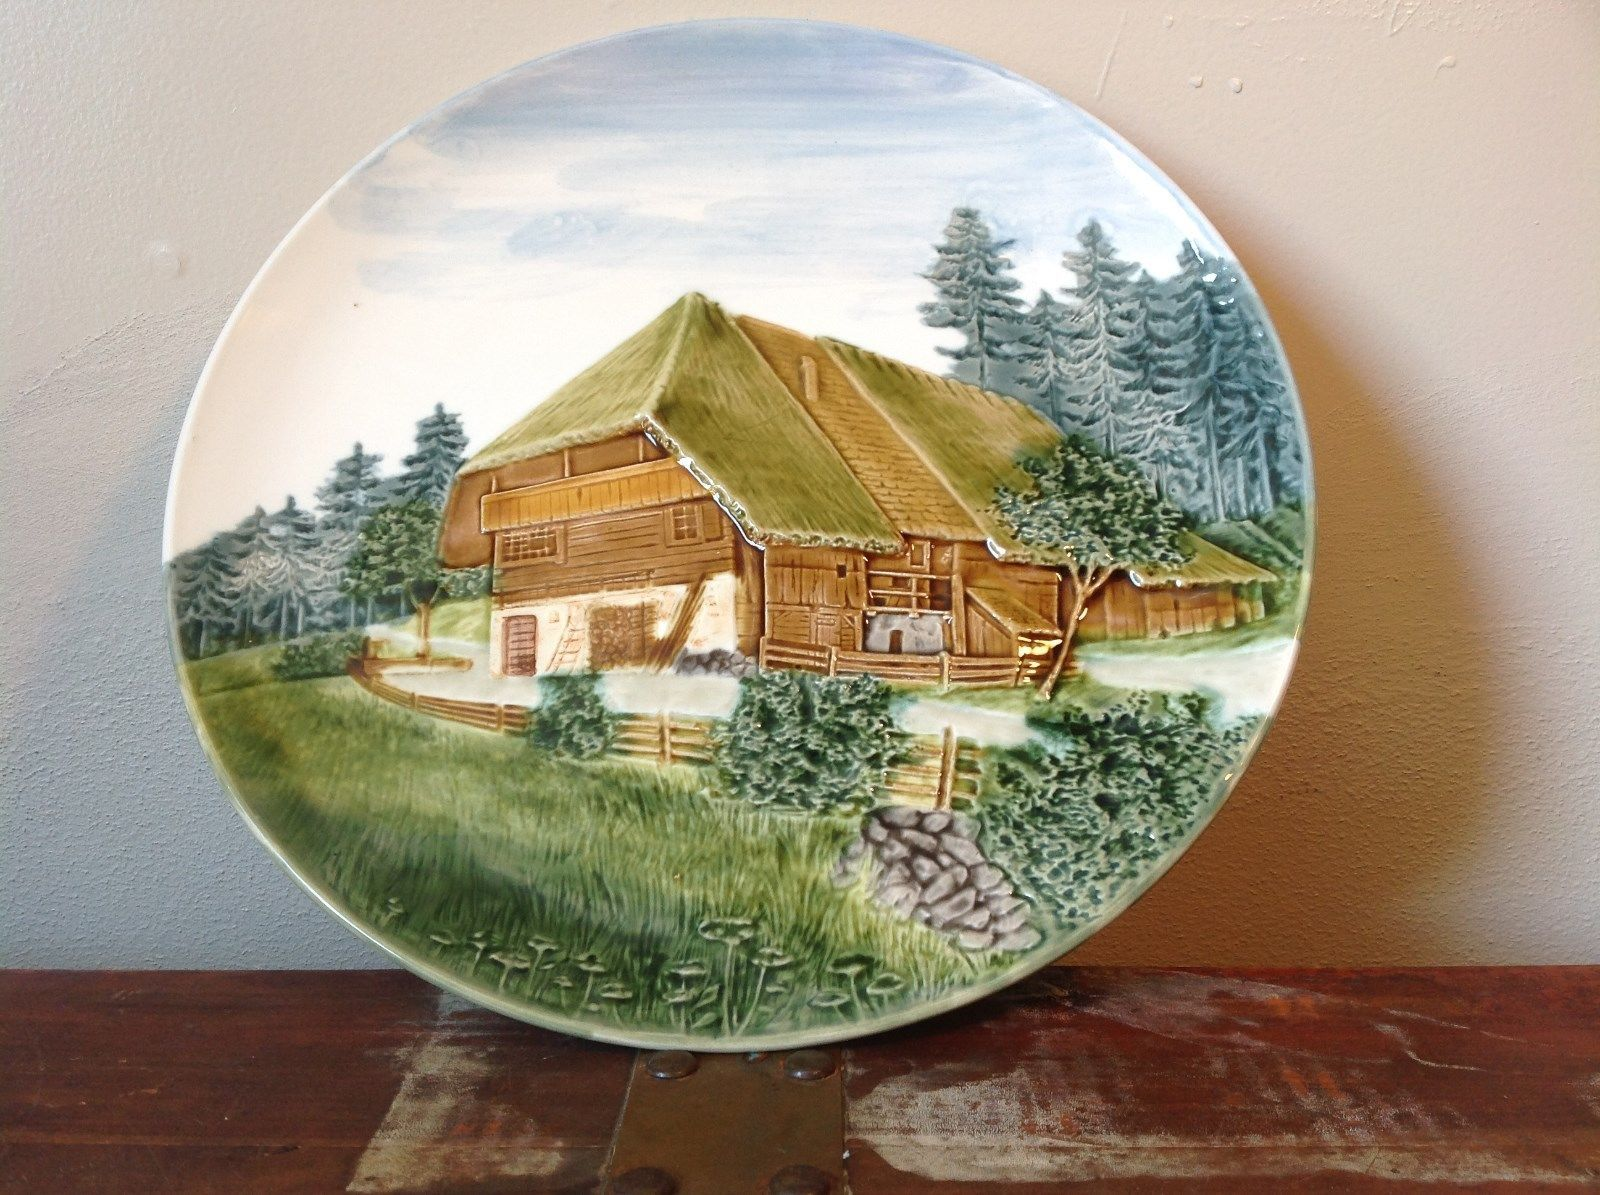 Decorative Rustic Painted House on Edge of Pine Forest Plate Made in Germany